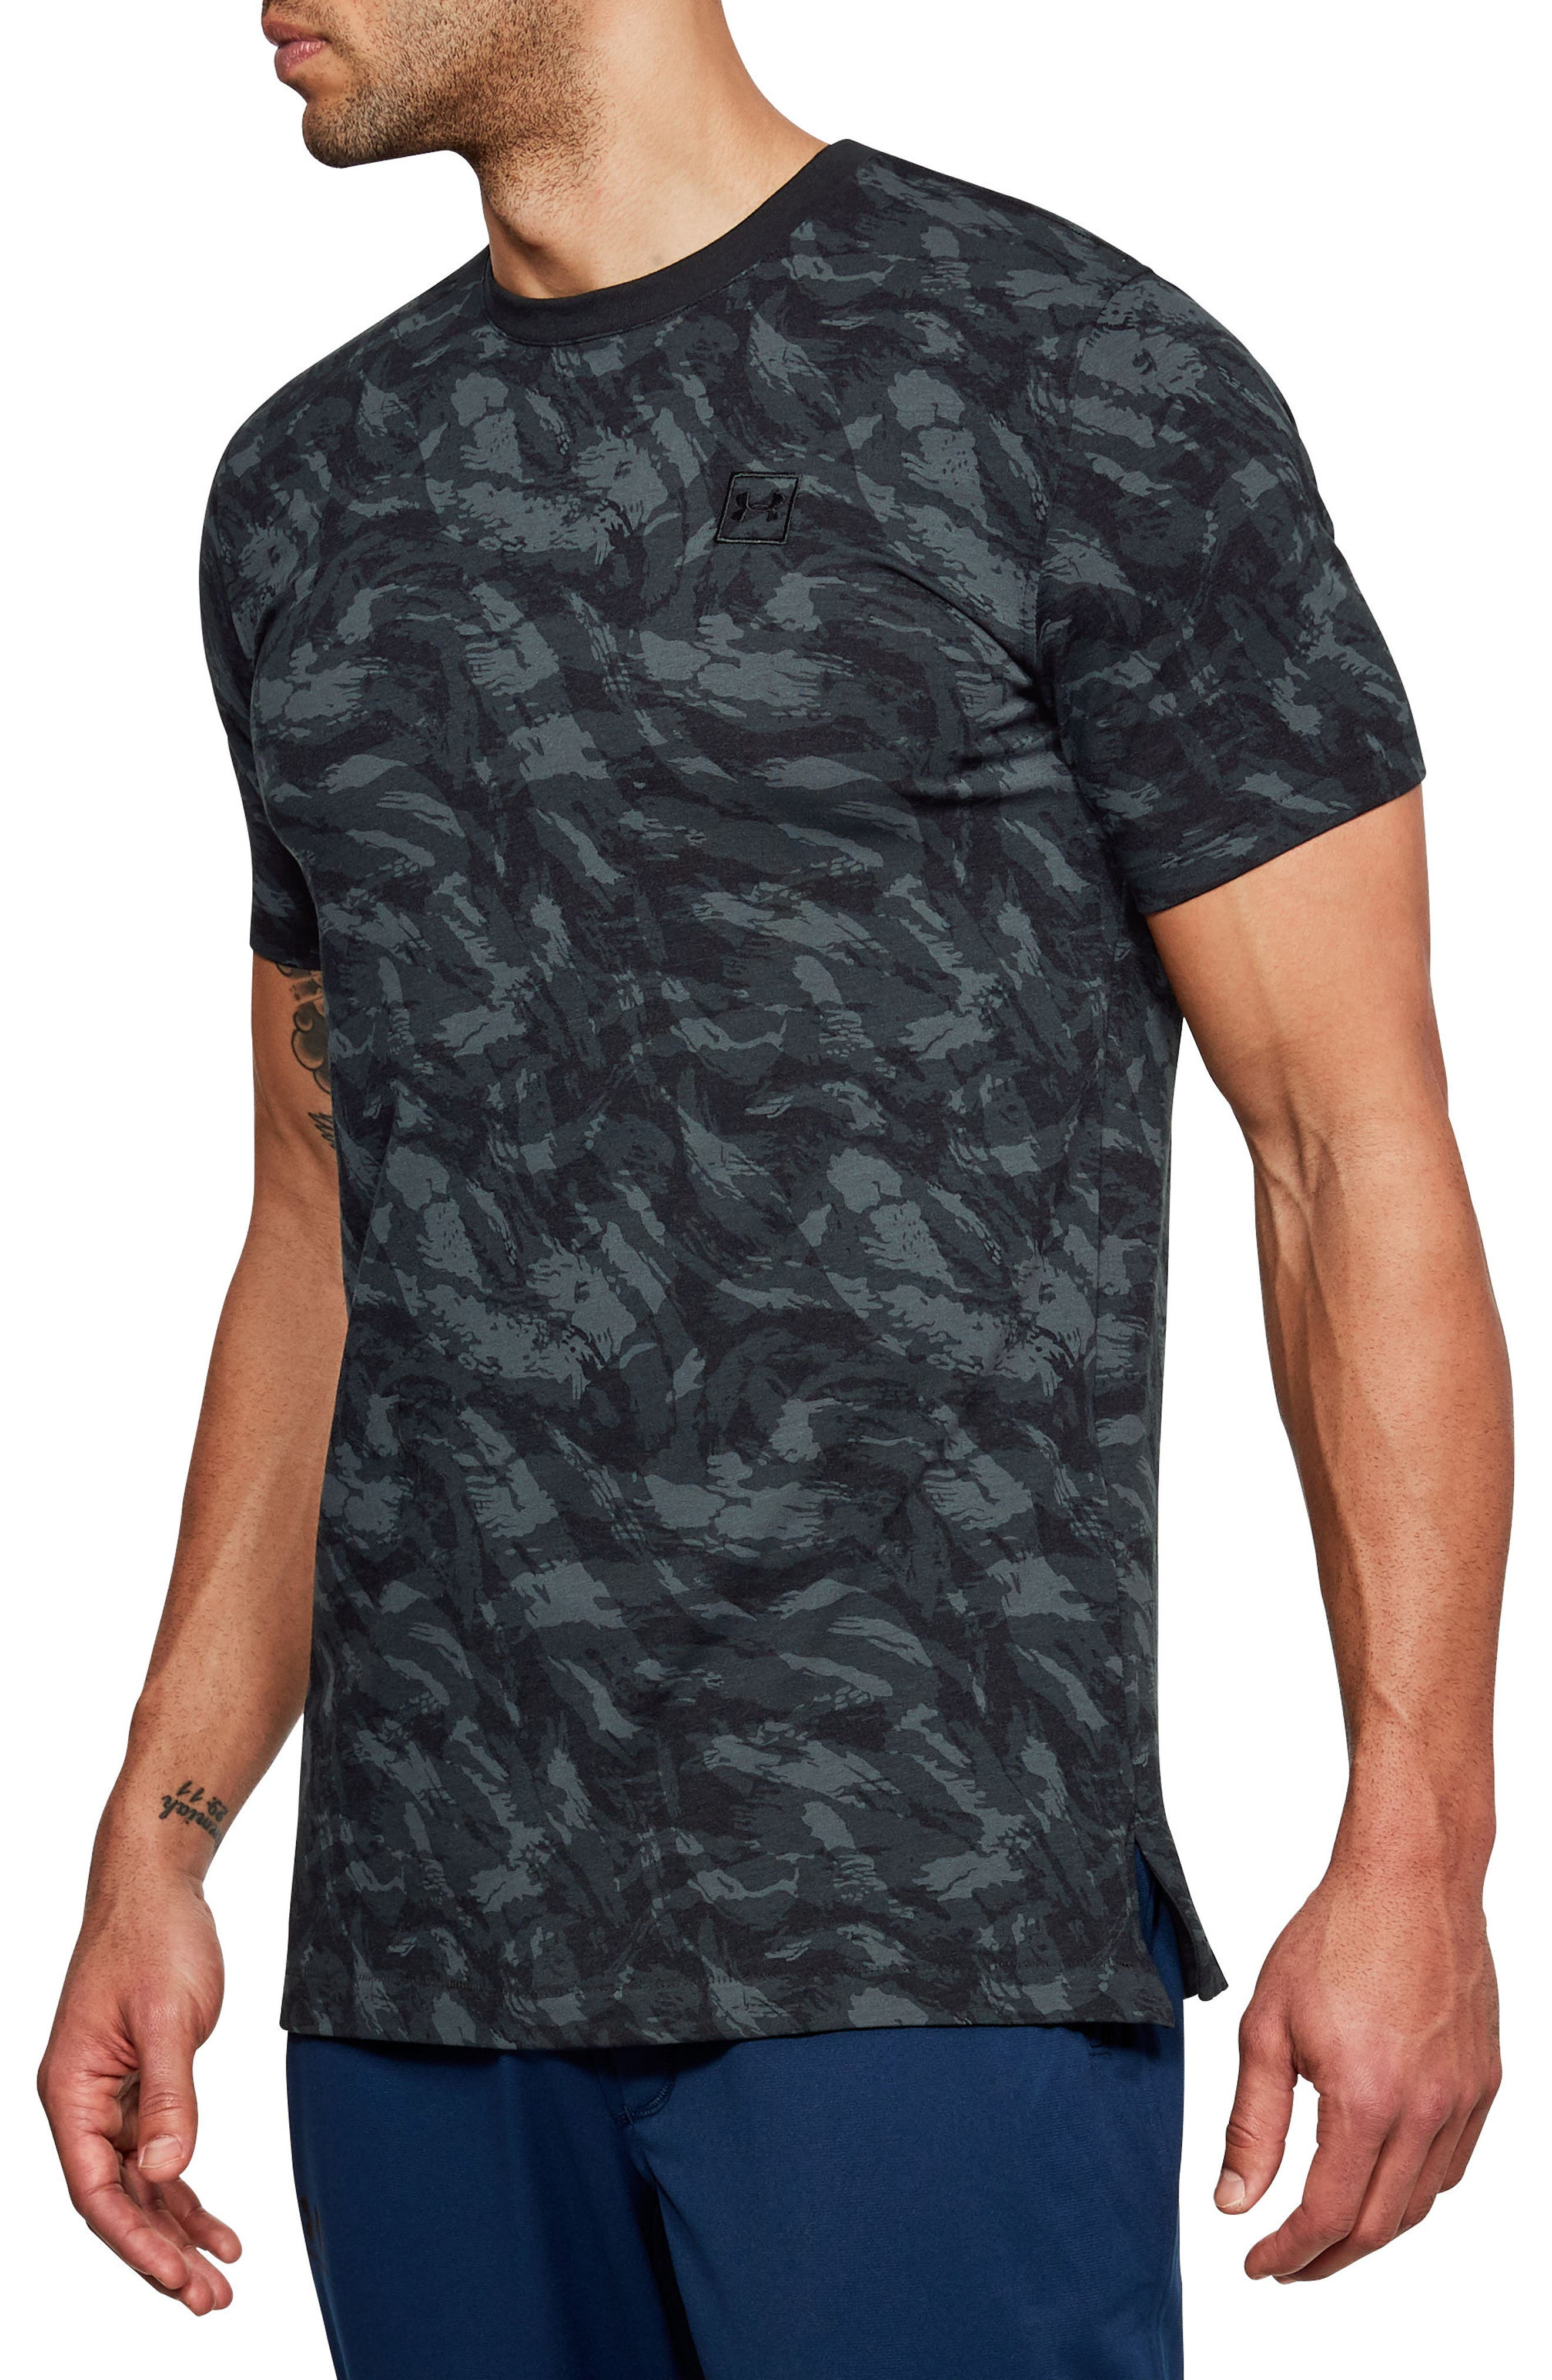 Sportstyle Print Charged Cotton<sup>®</sup> Fitted T-Shirt,                             Main thumbnail 1, color,                             001